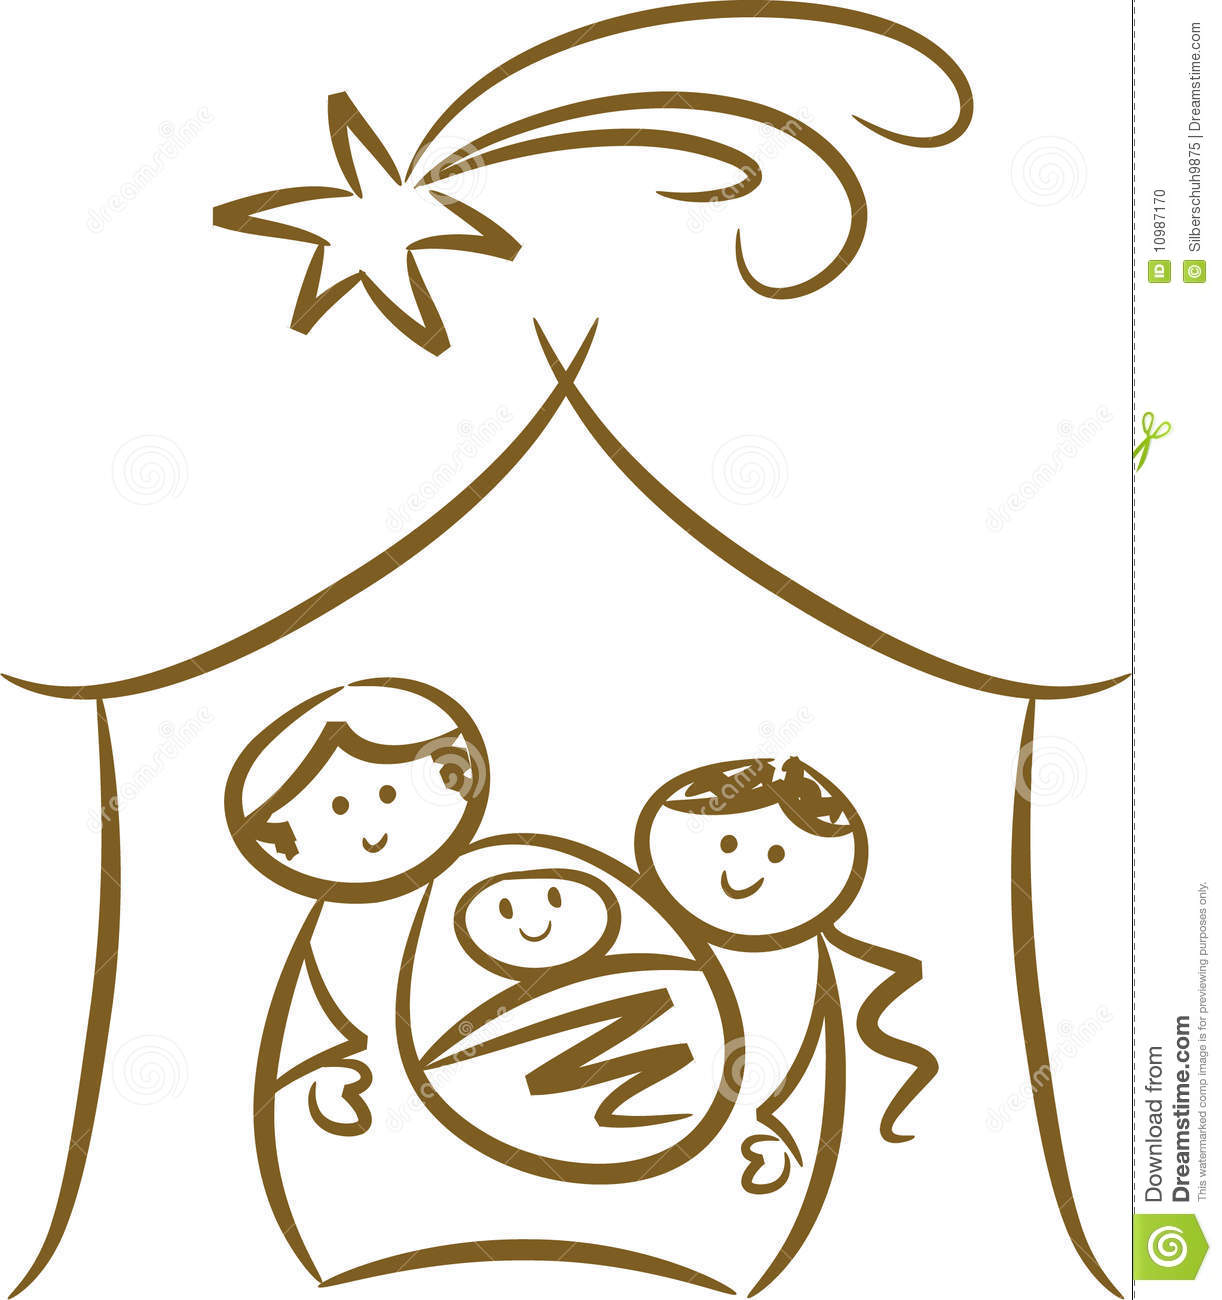 Line Art Nativity : Simple nativity scene stock vector illustration of family